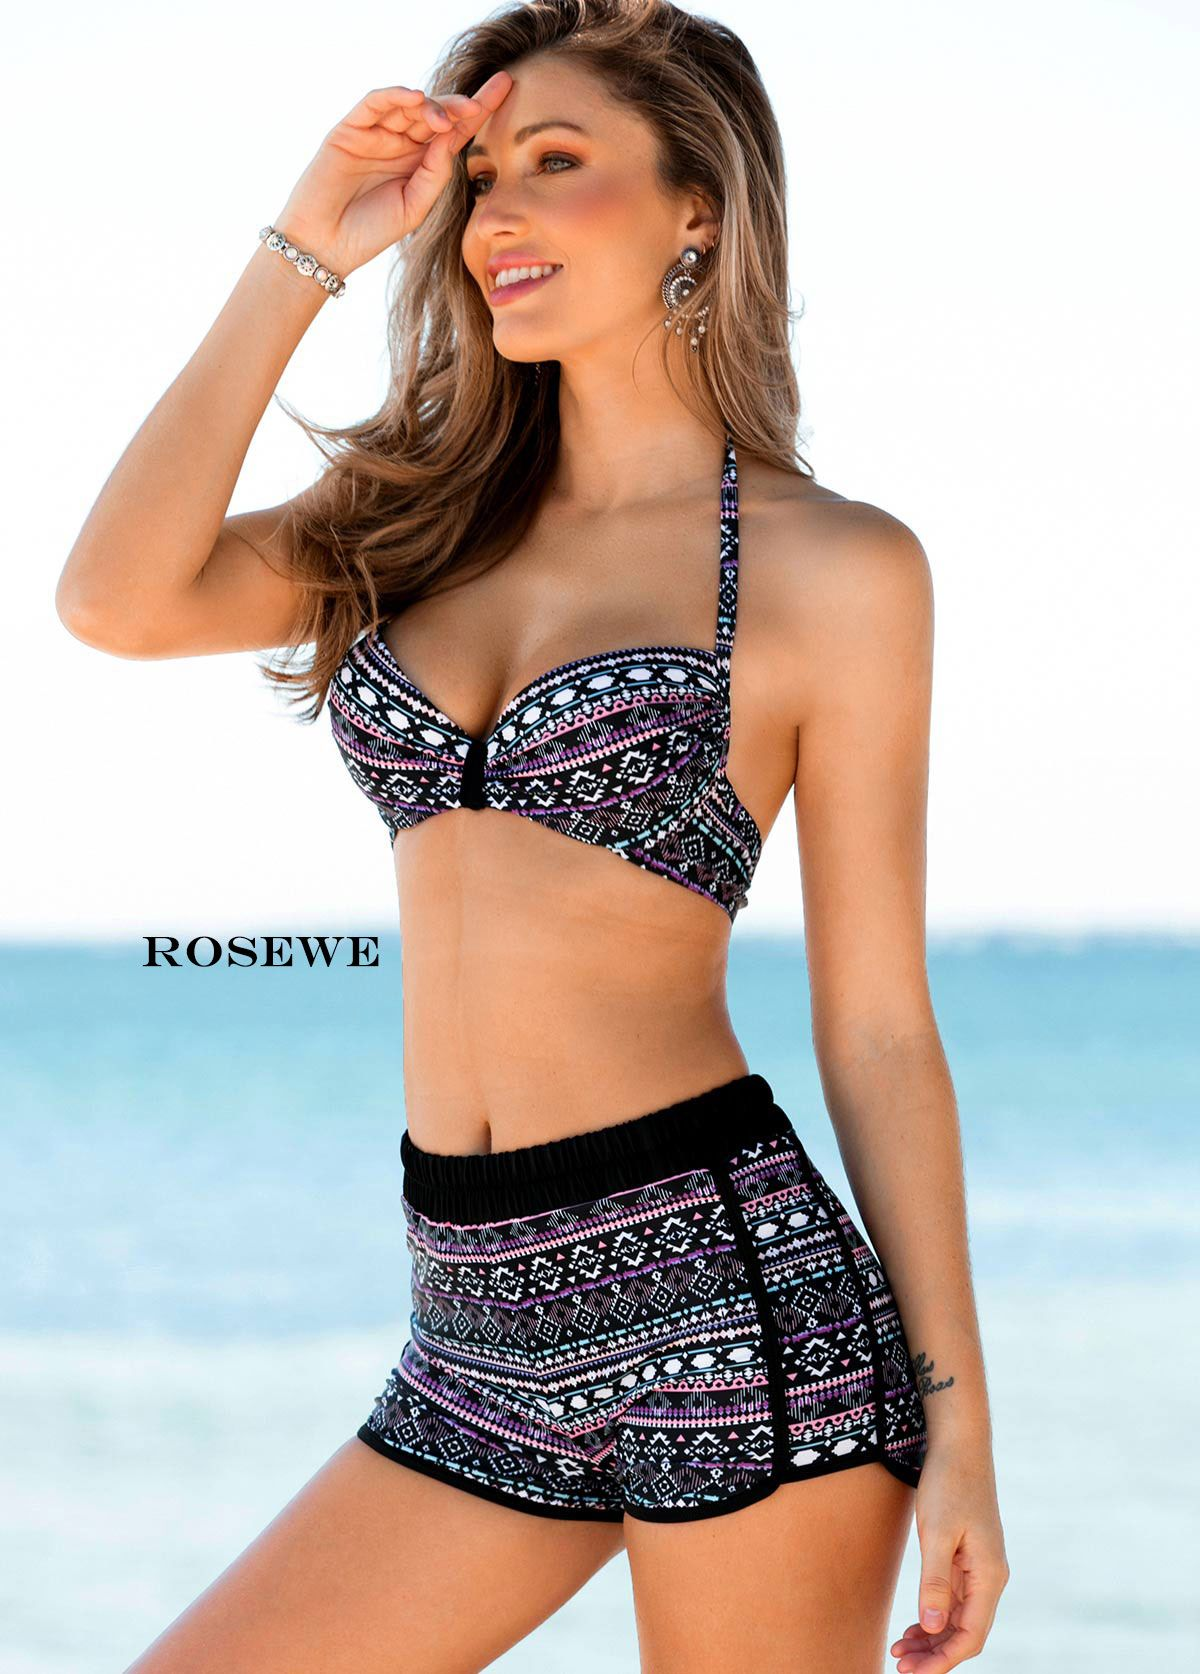 726fd0cbd7 Cute swimwear for women at Rosewe.com, free shipping worldwide, check it  out.